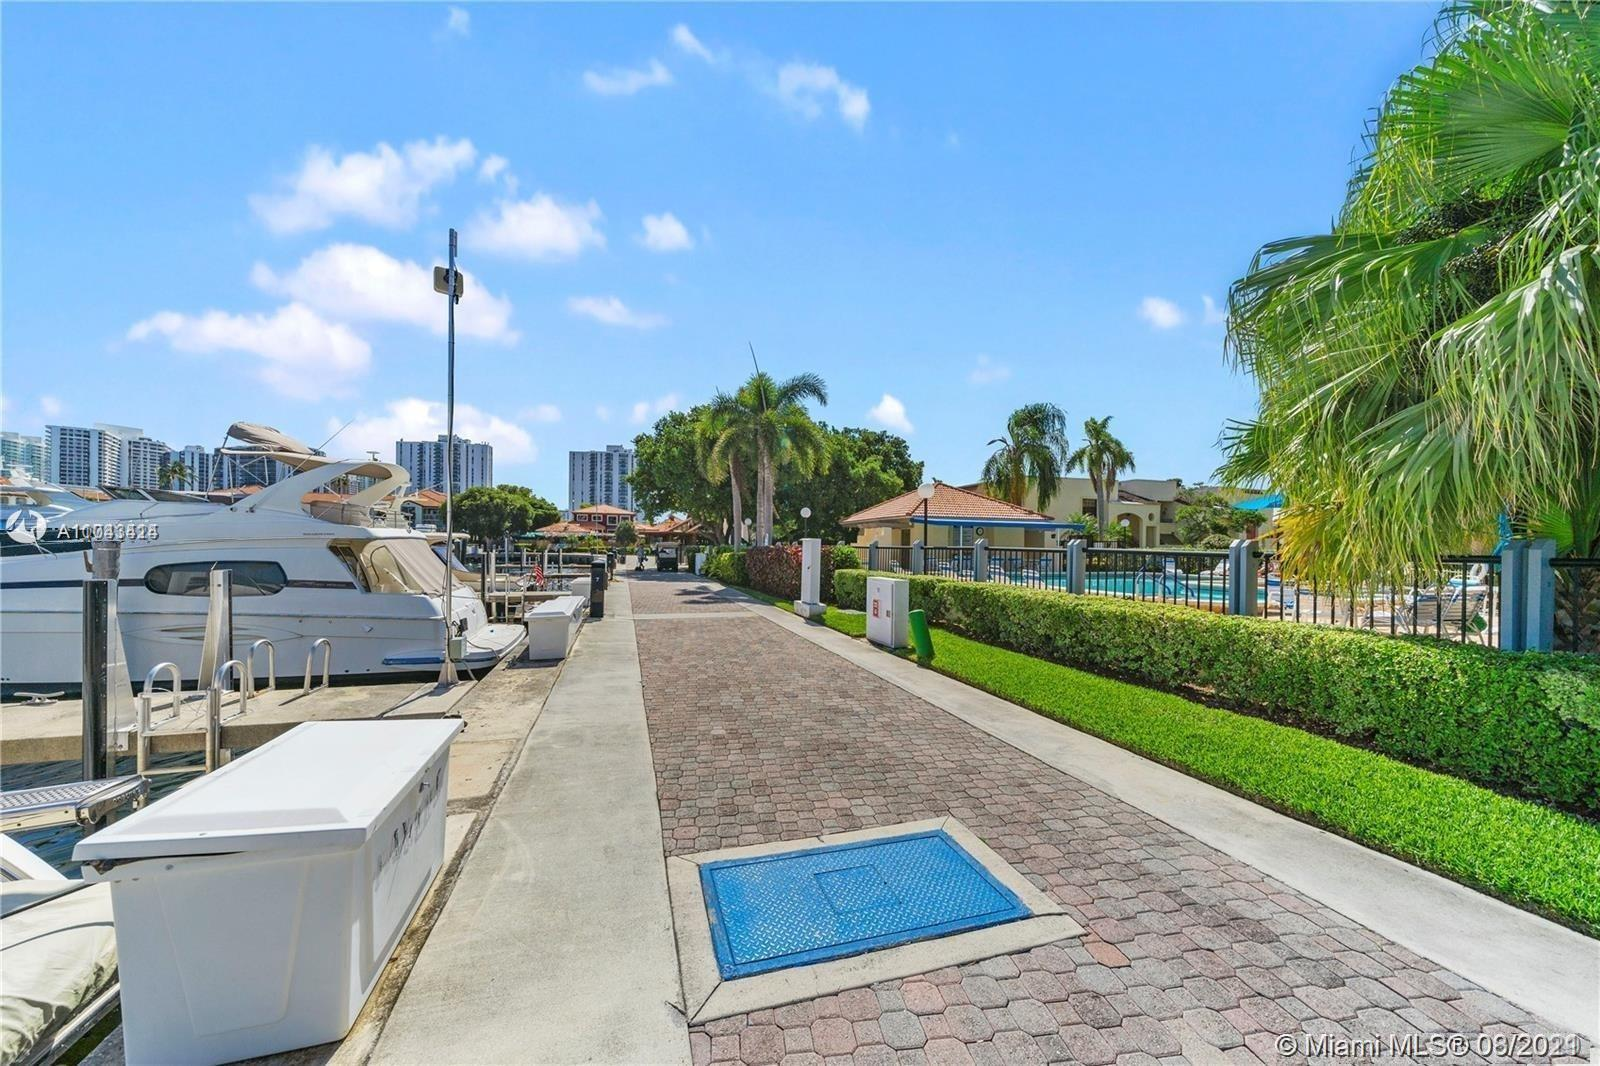 Owner moving, huge price reduction! Very spacious, updated condo in the heart of Aventura available